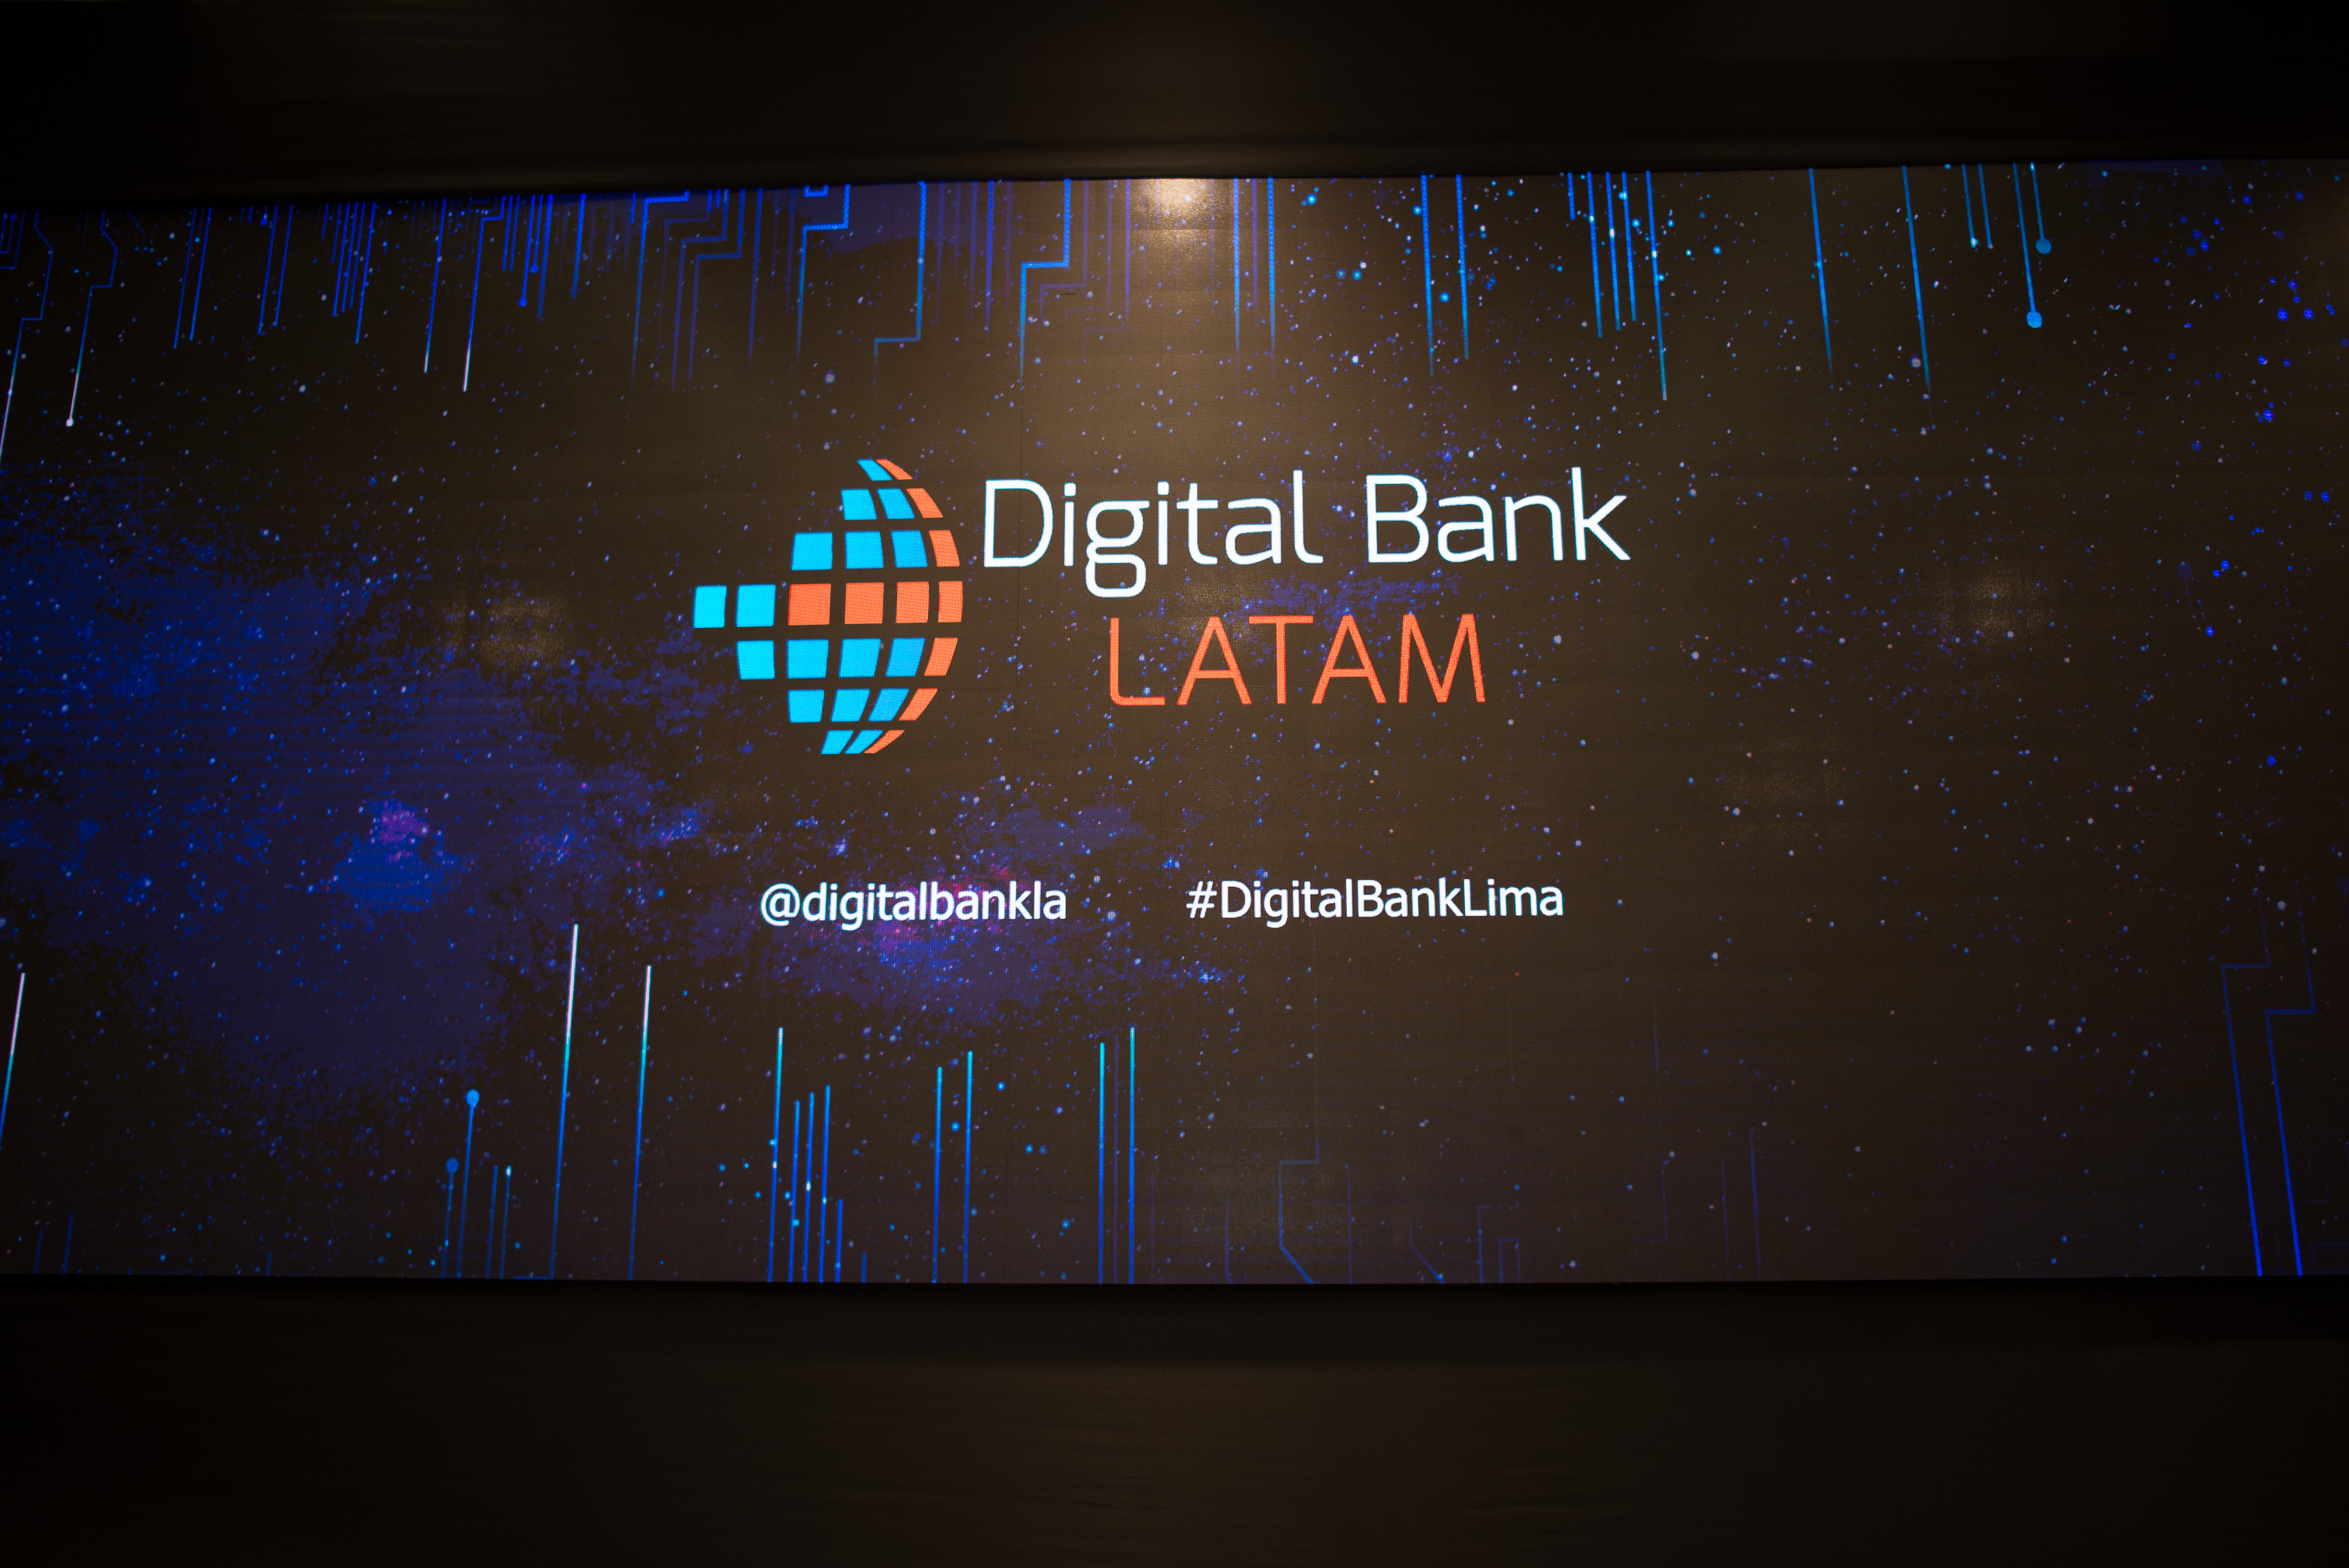 Digital-Bank-Latam-Lima-©2018-Fotógrafo-Anthony-Mujica63.jpg